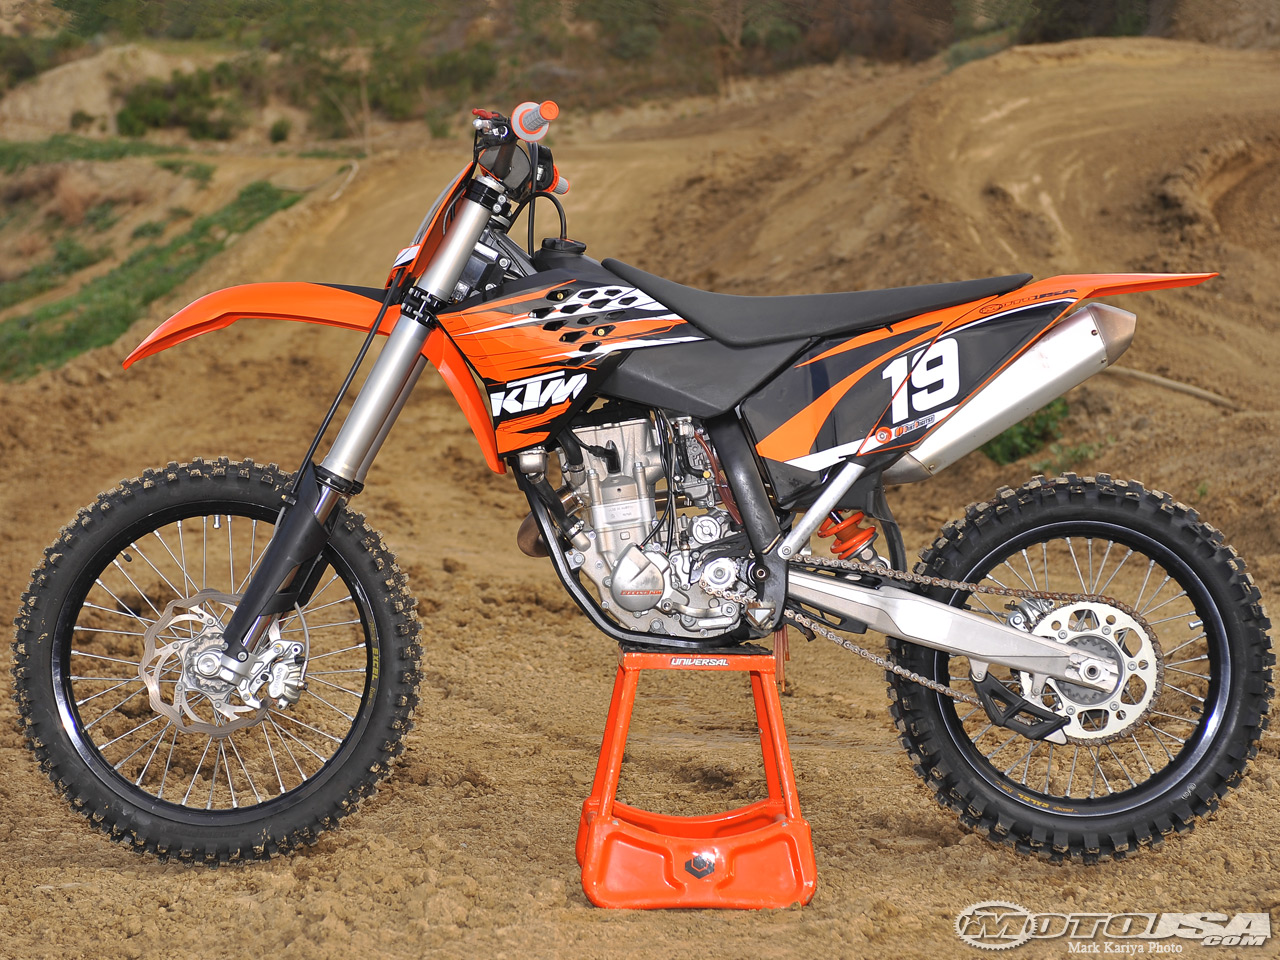 2009 ktm 250 sx f: pics, specs and information - onlymotorbikes